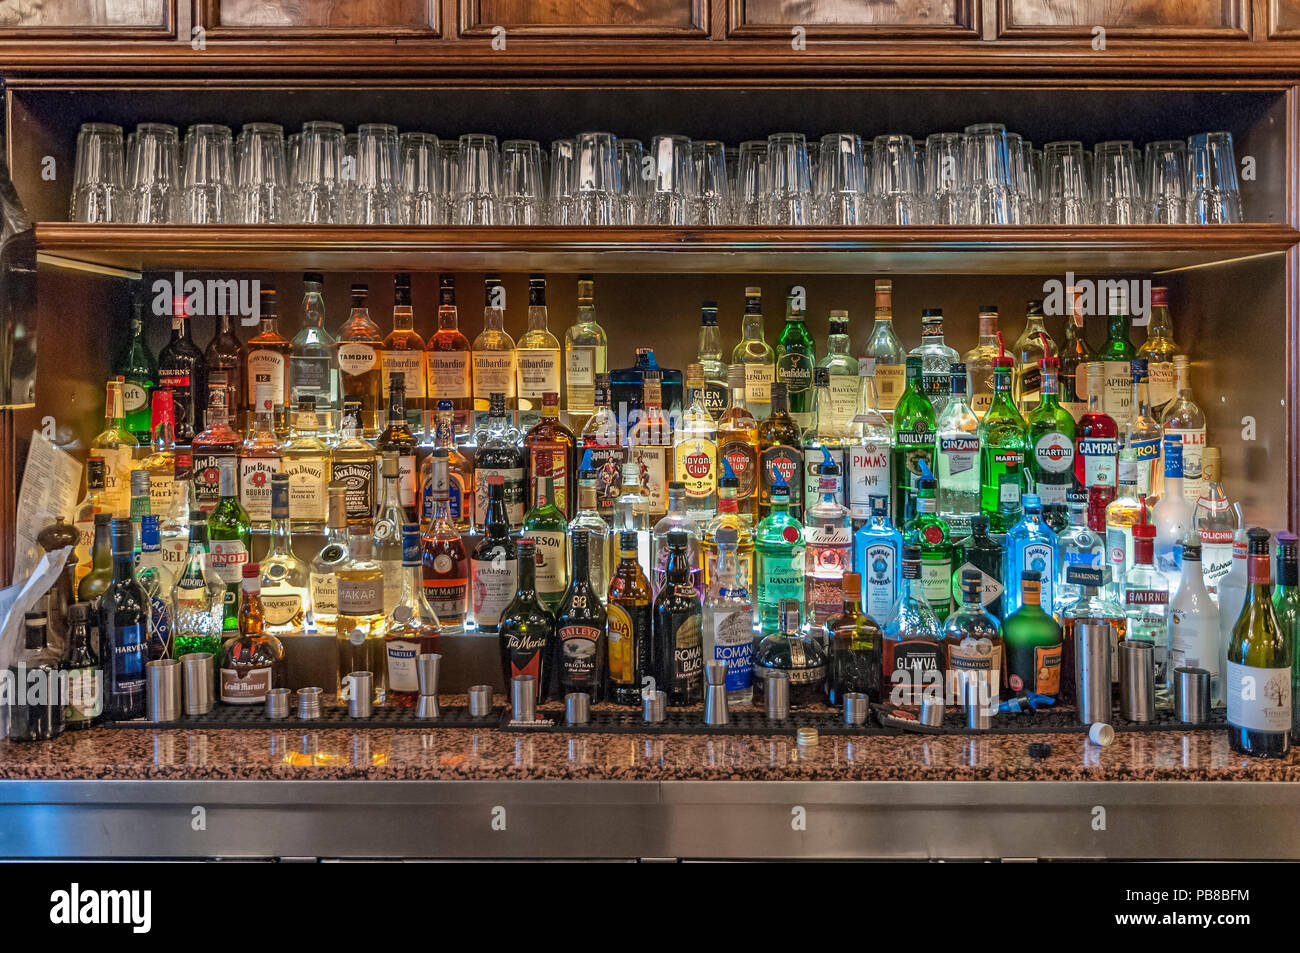 Bar stock of bottles of spirits - Stock Image